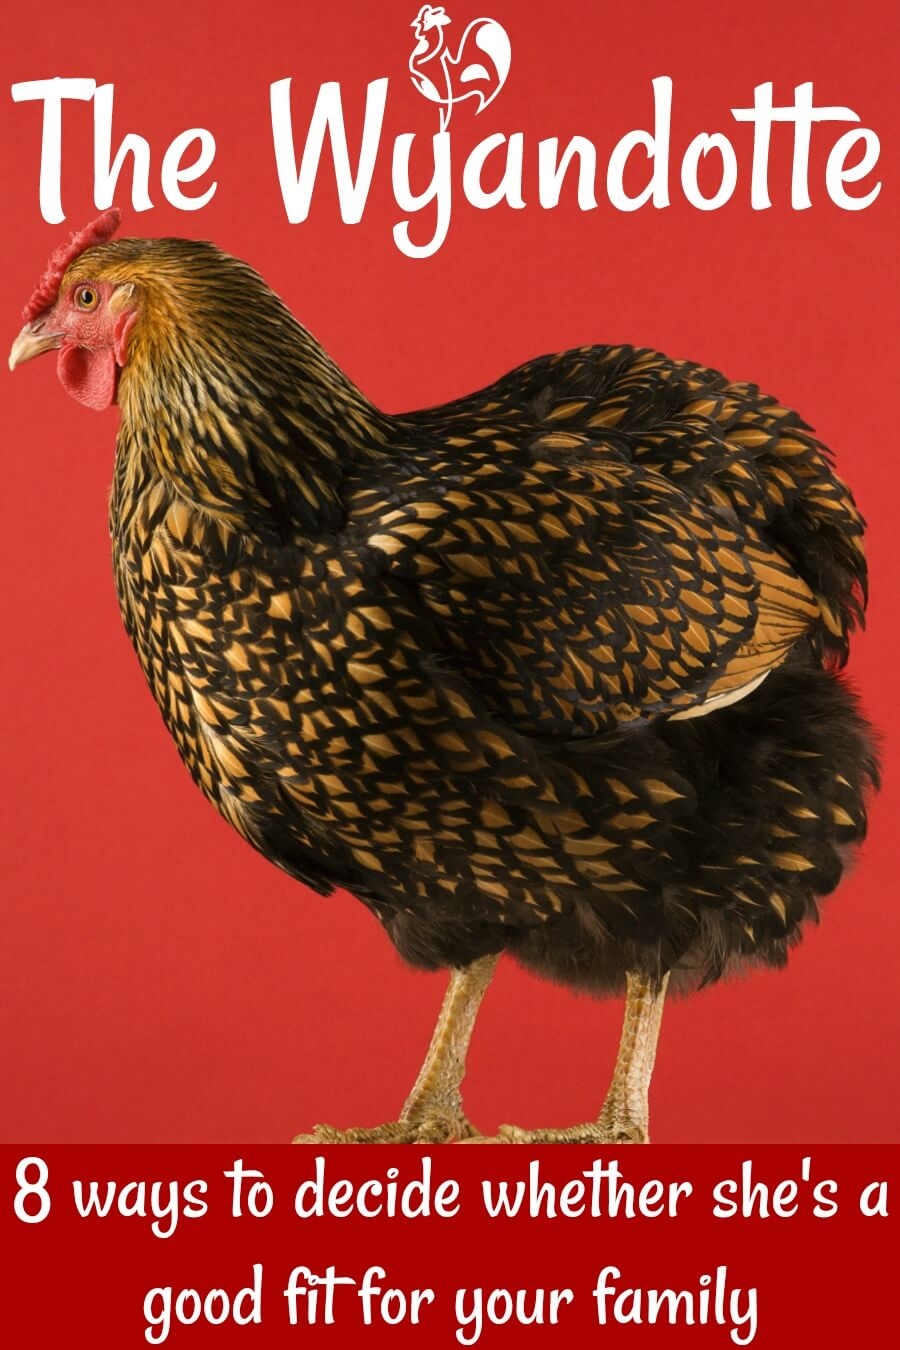 Wyandotte chickens: the right breed for you? 8 ways to decide